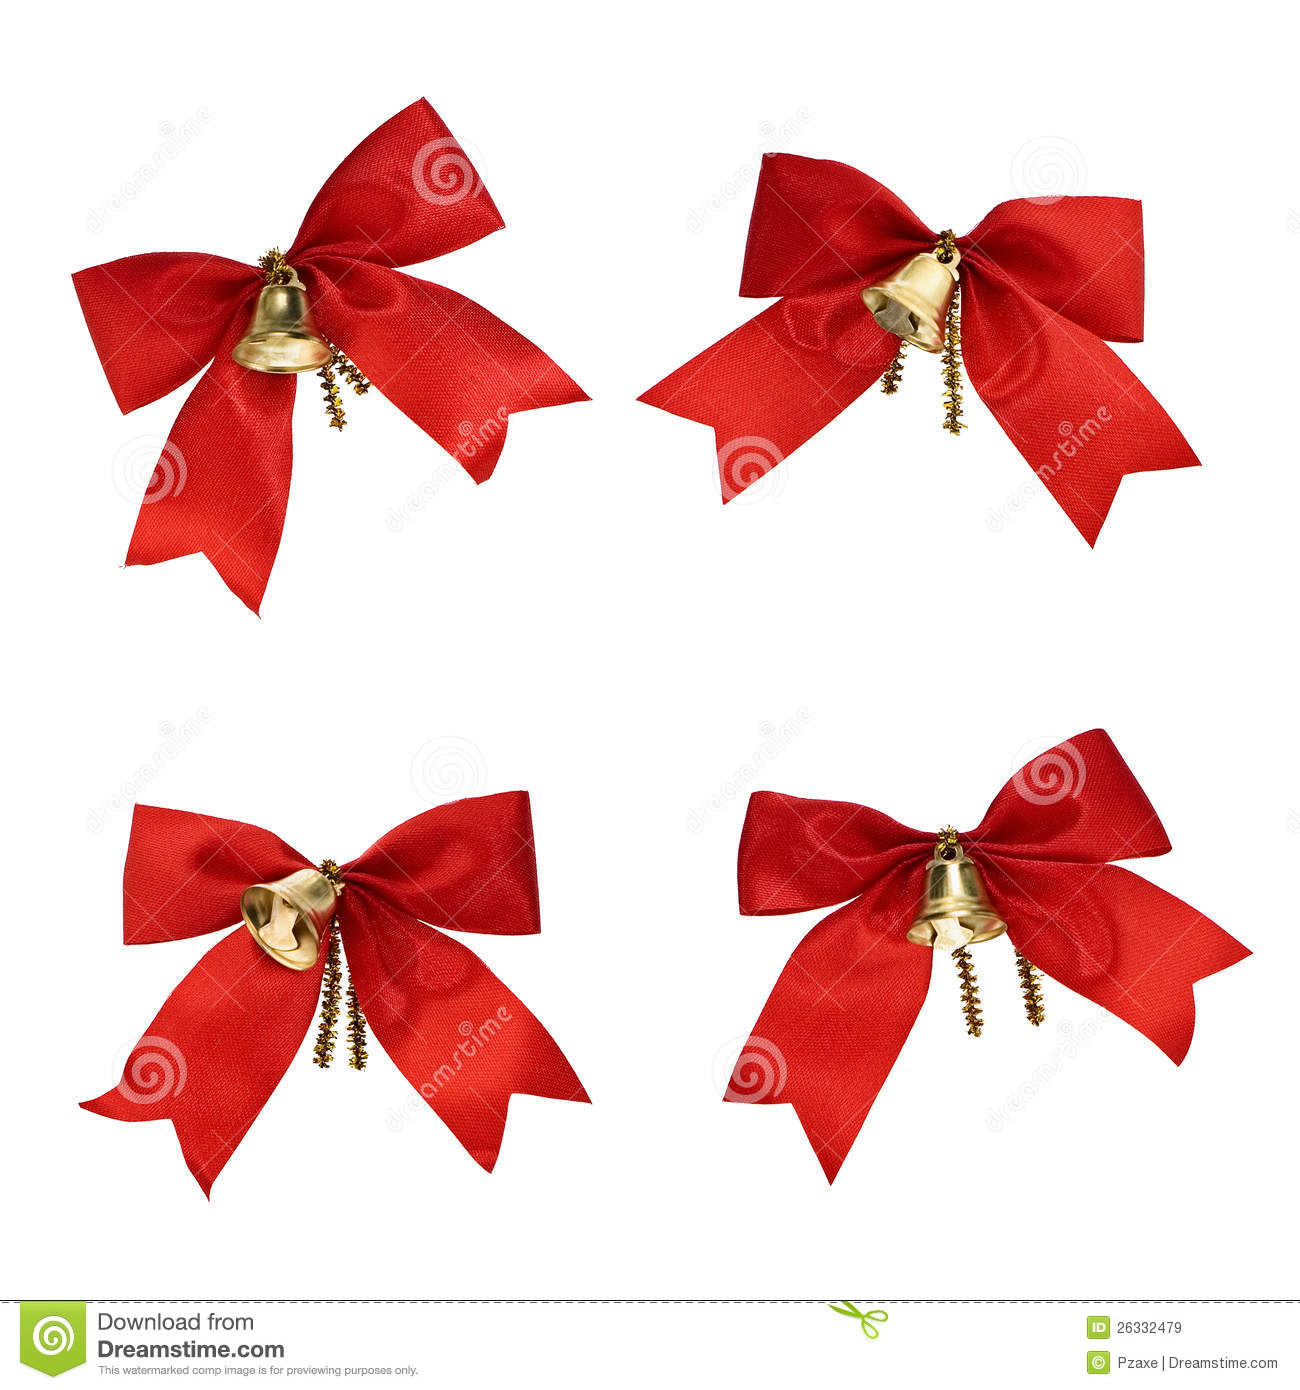 christmas decorations red ribbons and bells - Christmas Ribbon Decorations